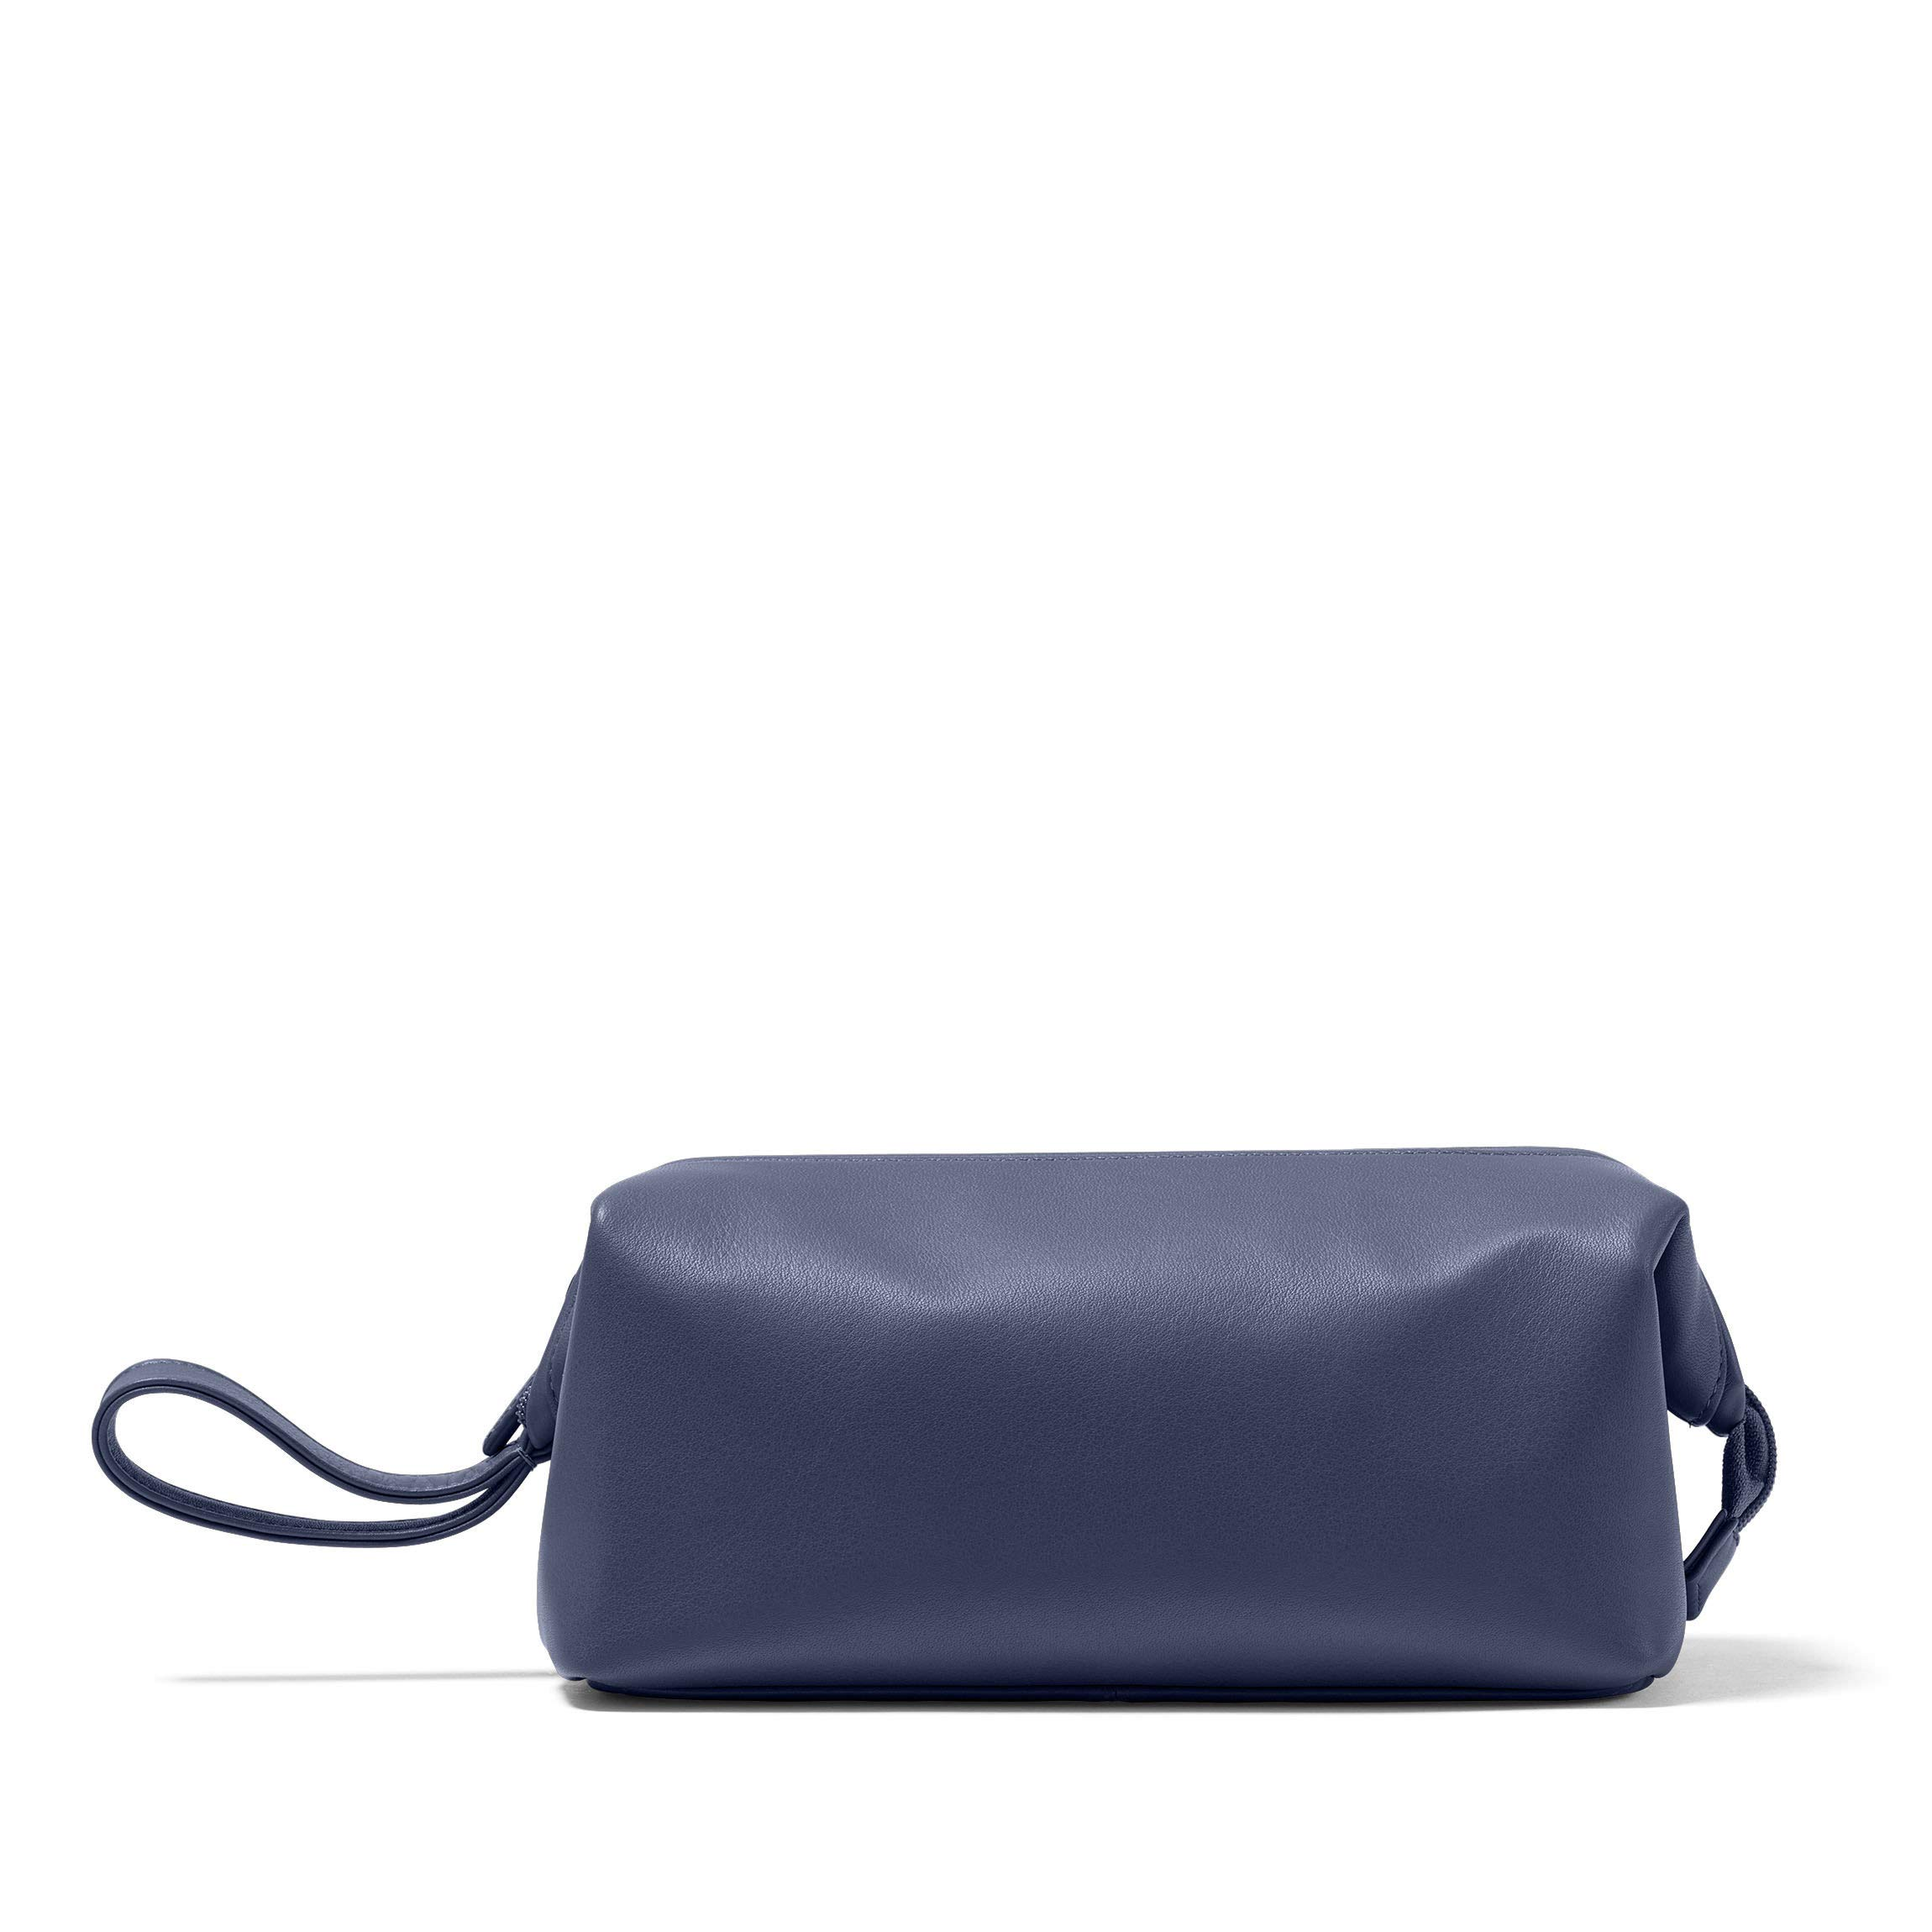 Leatherology Framed Toiletry Bag - Full Grain Leather - Navy (blue)